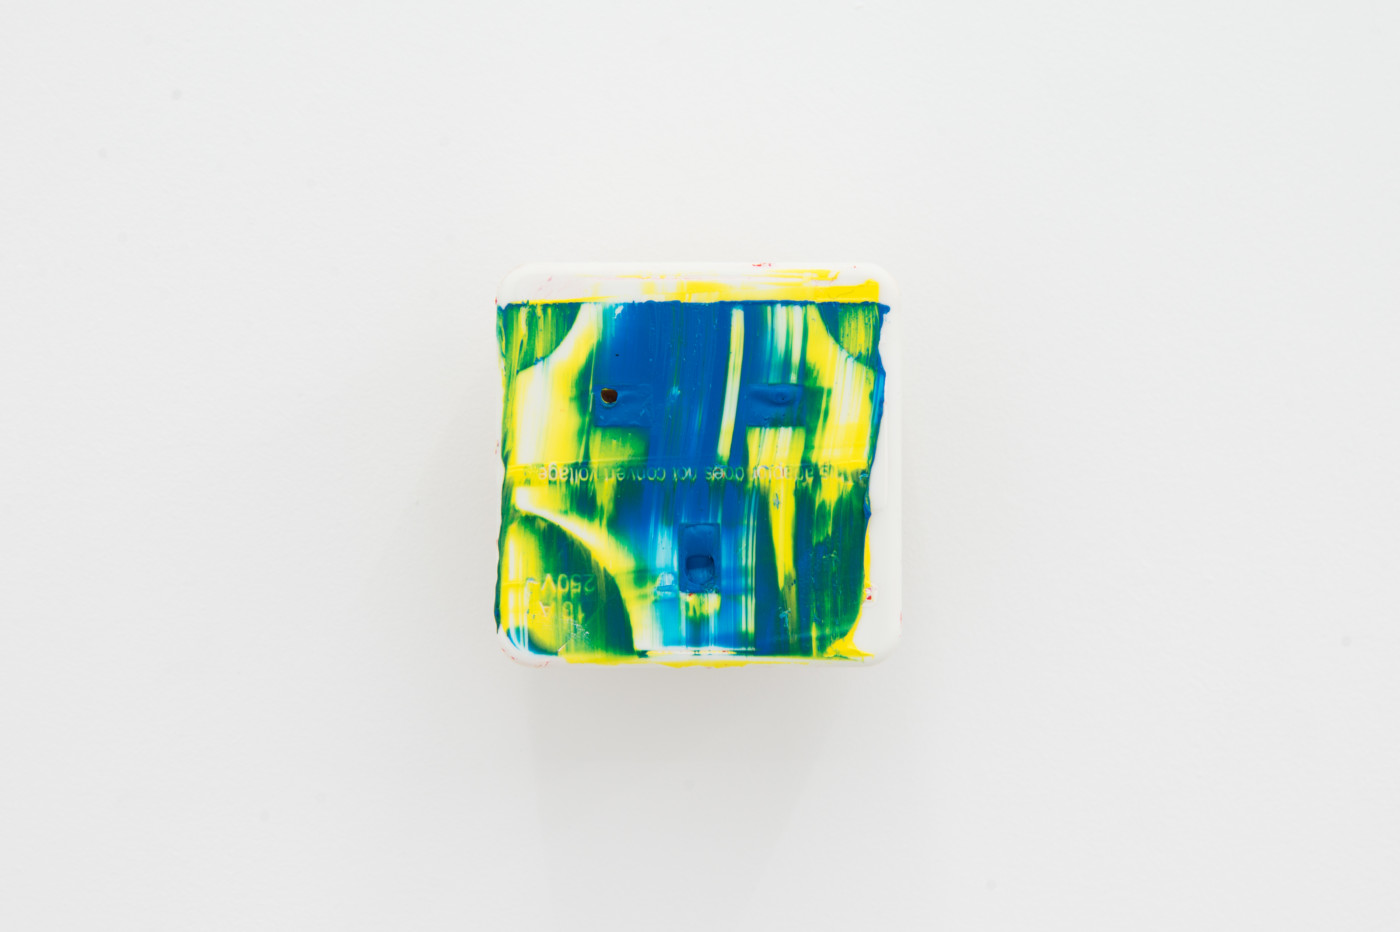 KEITH FARQUHAR  Scream #4</I>, 2019 Oil on travel adaptor 6 x 6 x 4,6 cm / 2.3 x 2.3 x 1.8 in